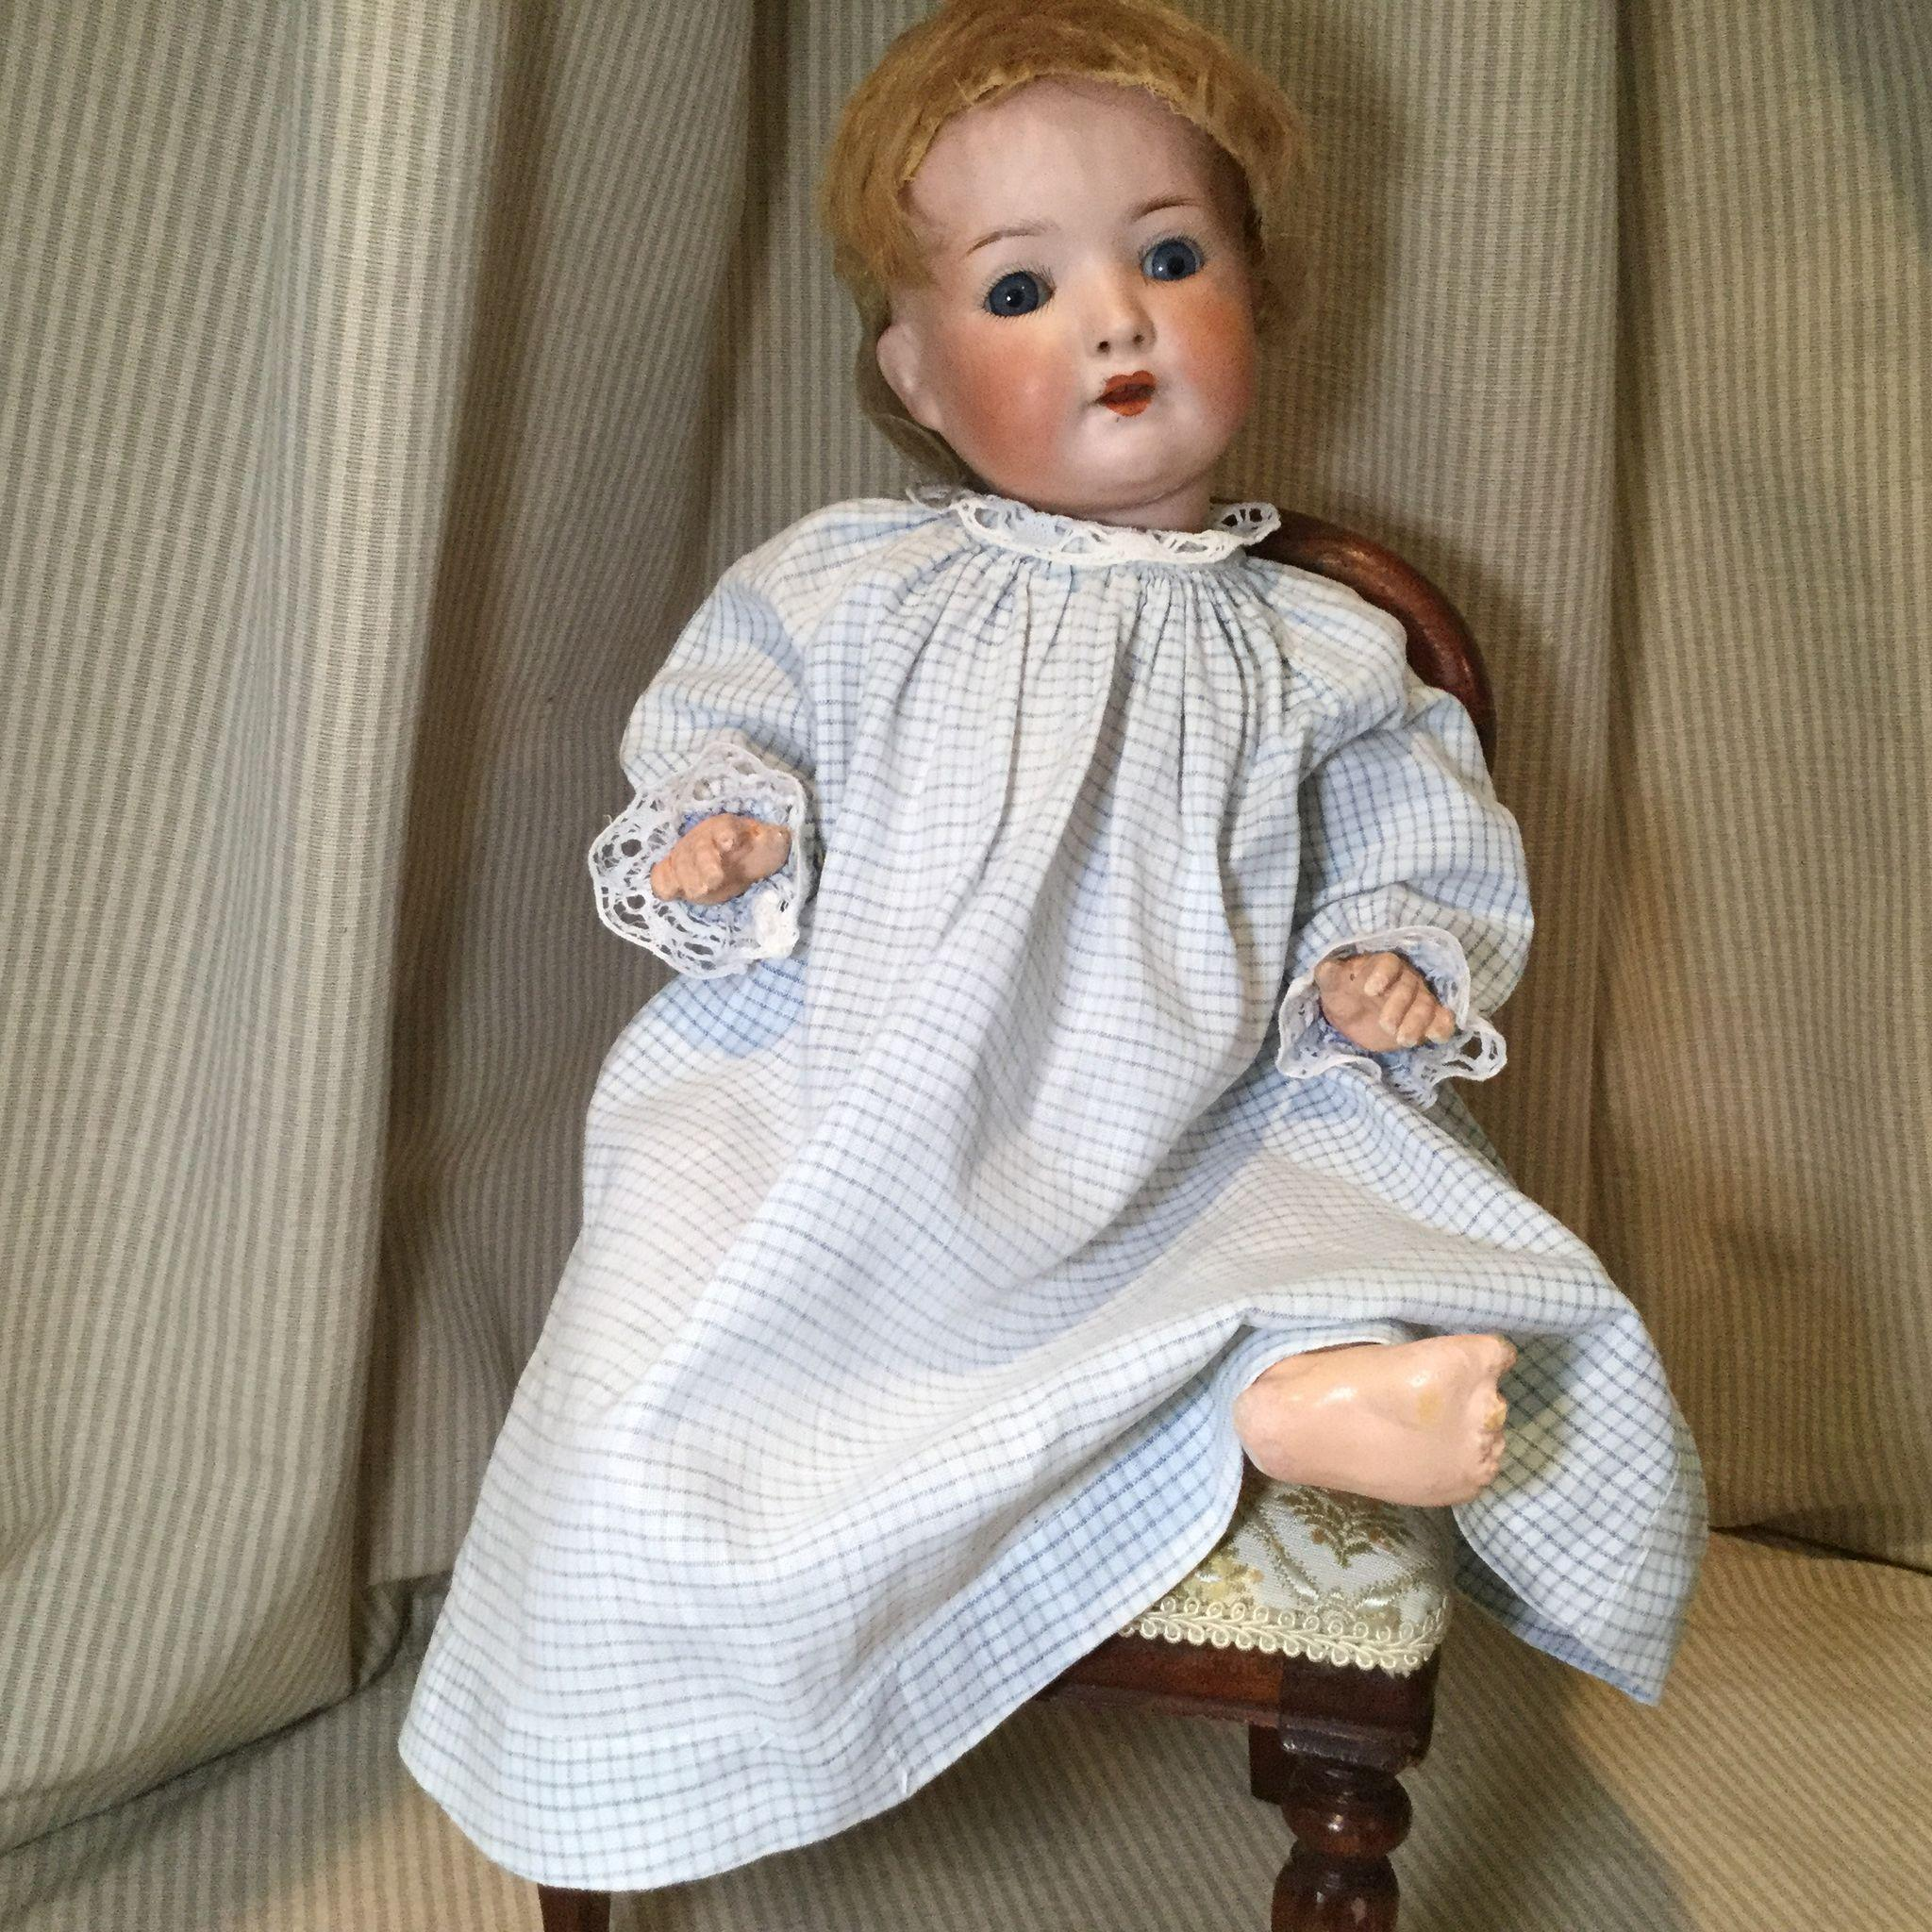 Early 20c. Blue and White Checked Baby Doll/Tot Doll Dress